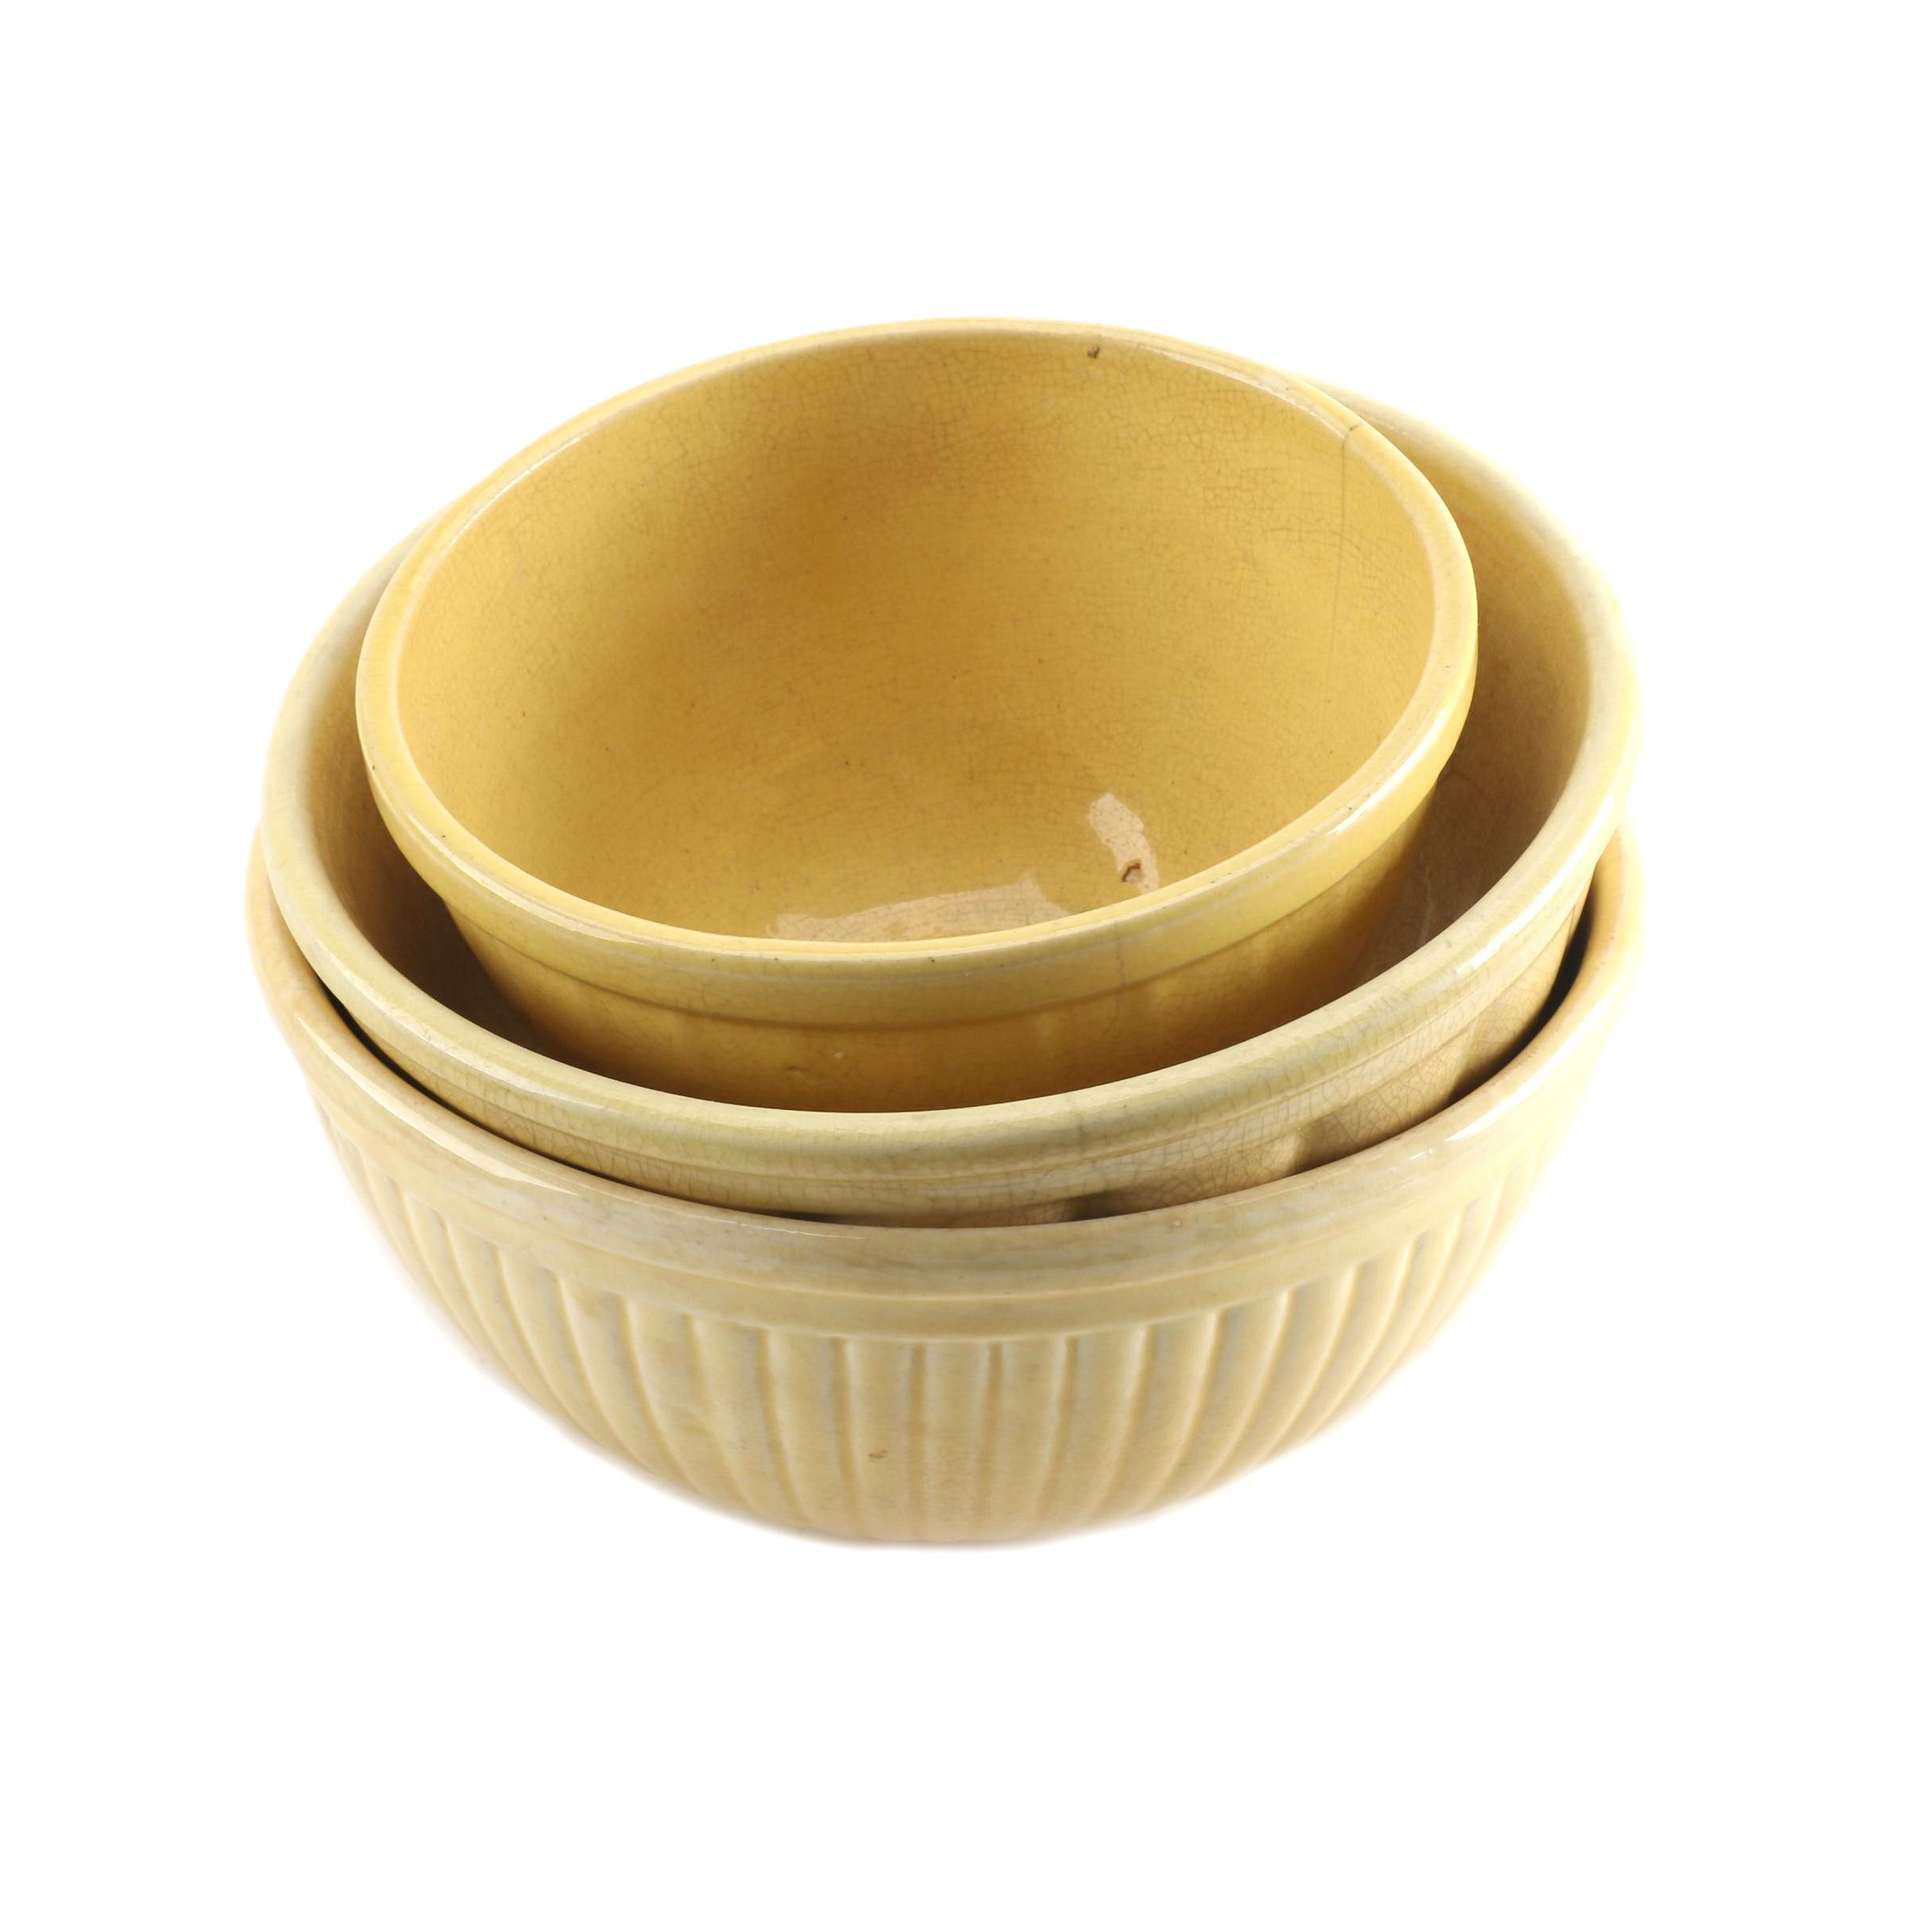 Vintage Yellow Ceramic Mixing Bowls